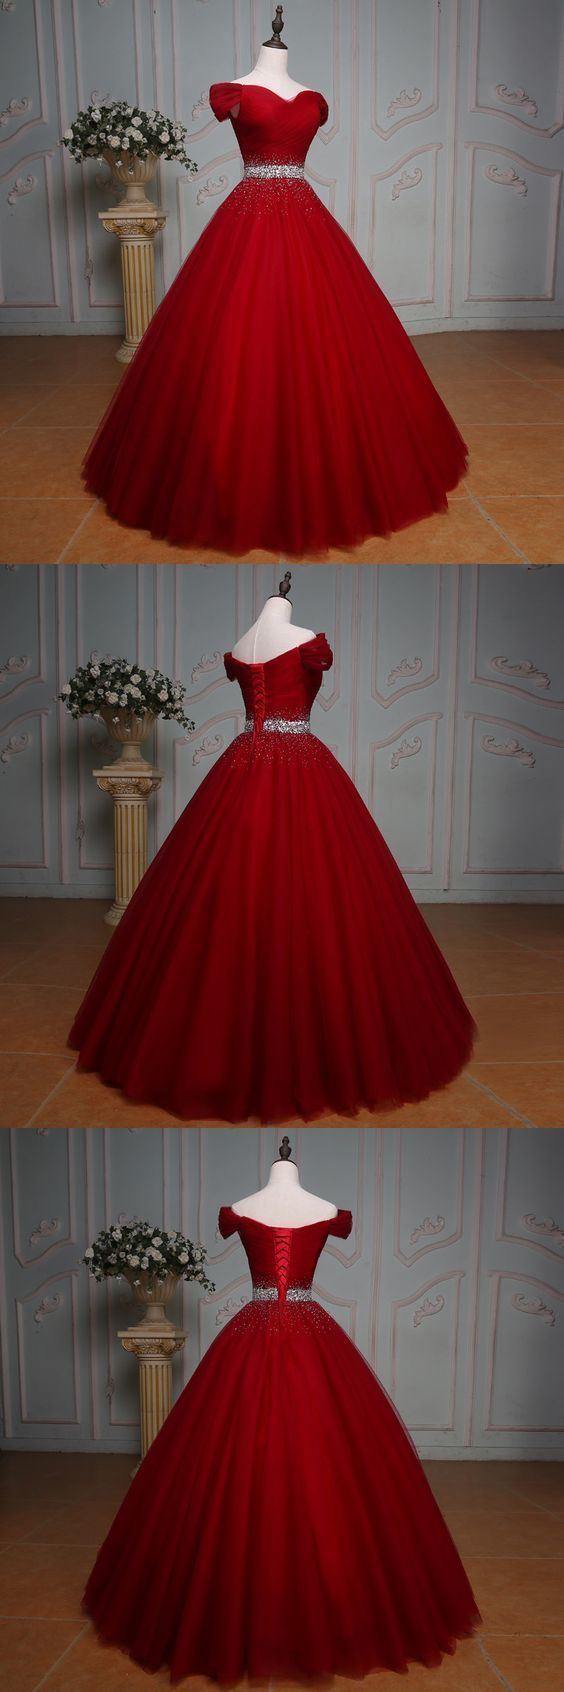 Handsome red prom dress off shoulder long ball gown party dress